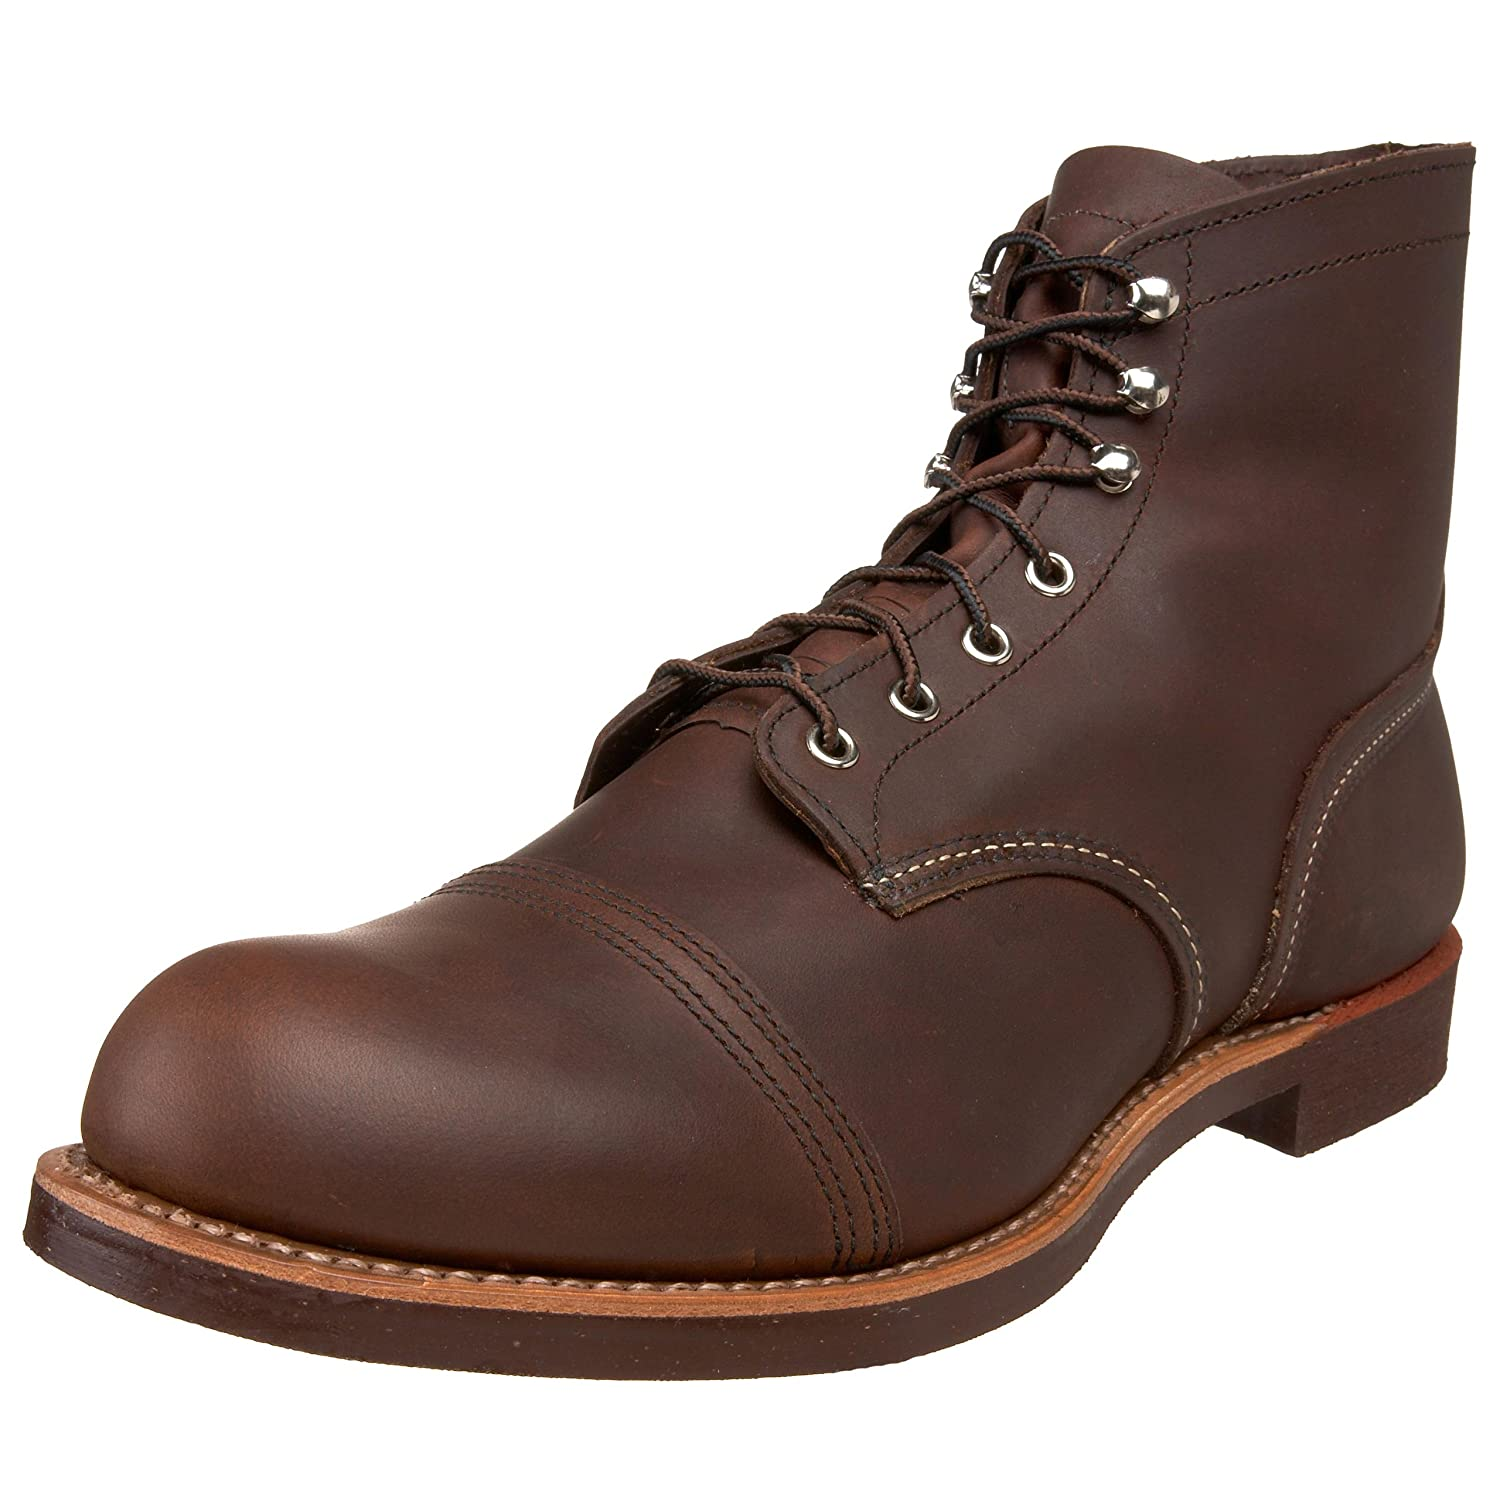 Retro Clothing for Men | Vintage Men's Fashion Red Wing Heritage Iron Ranger 6-Inch Boot $239.96 AT vintagedancer.com